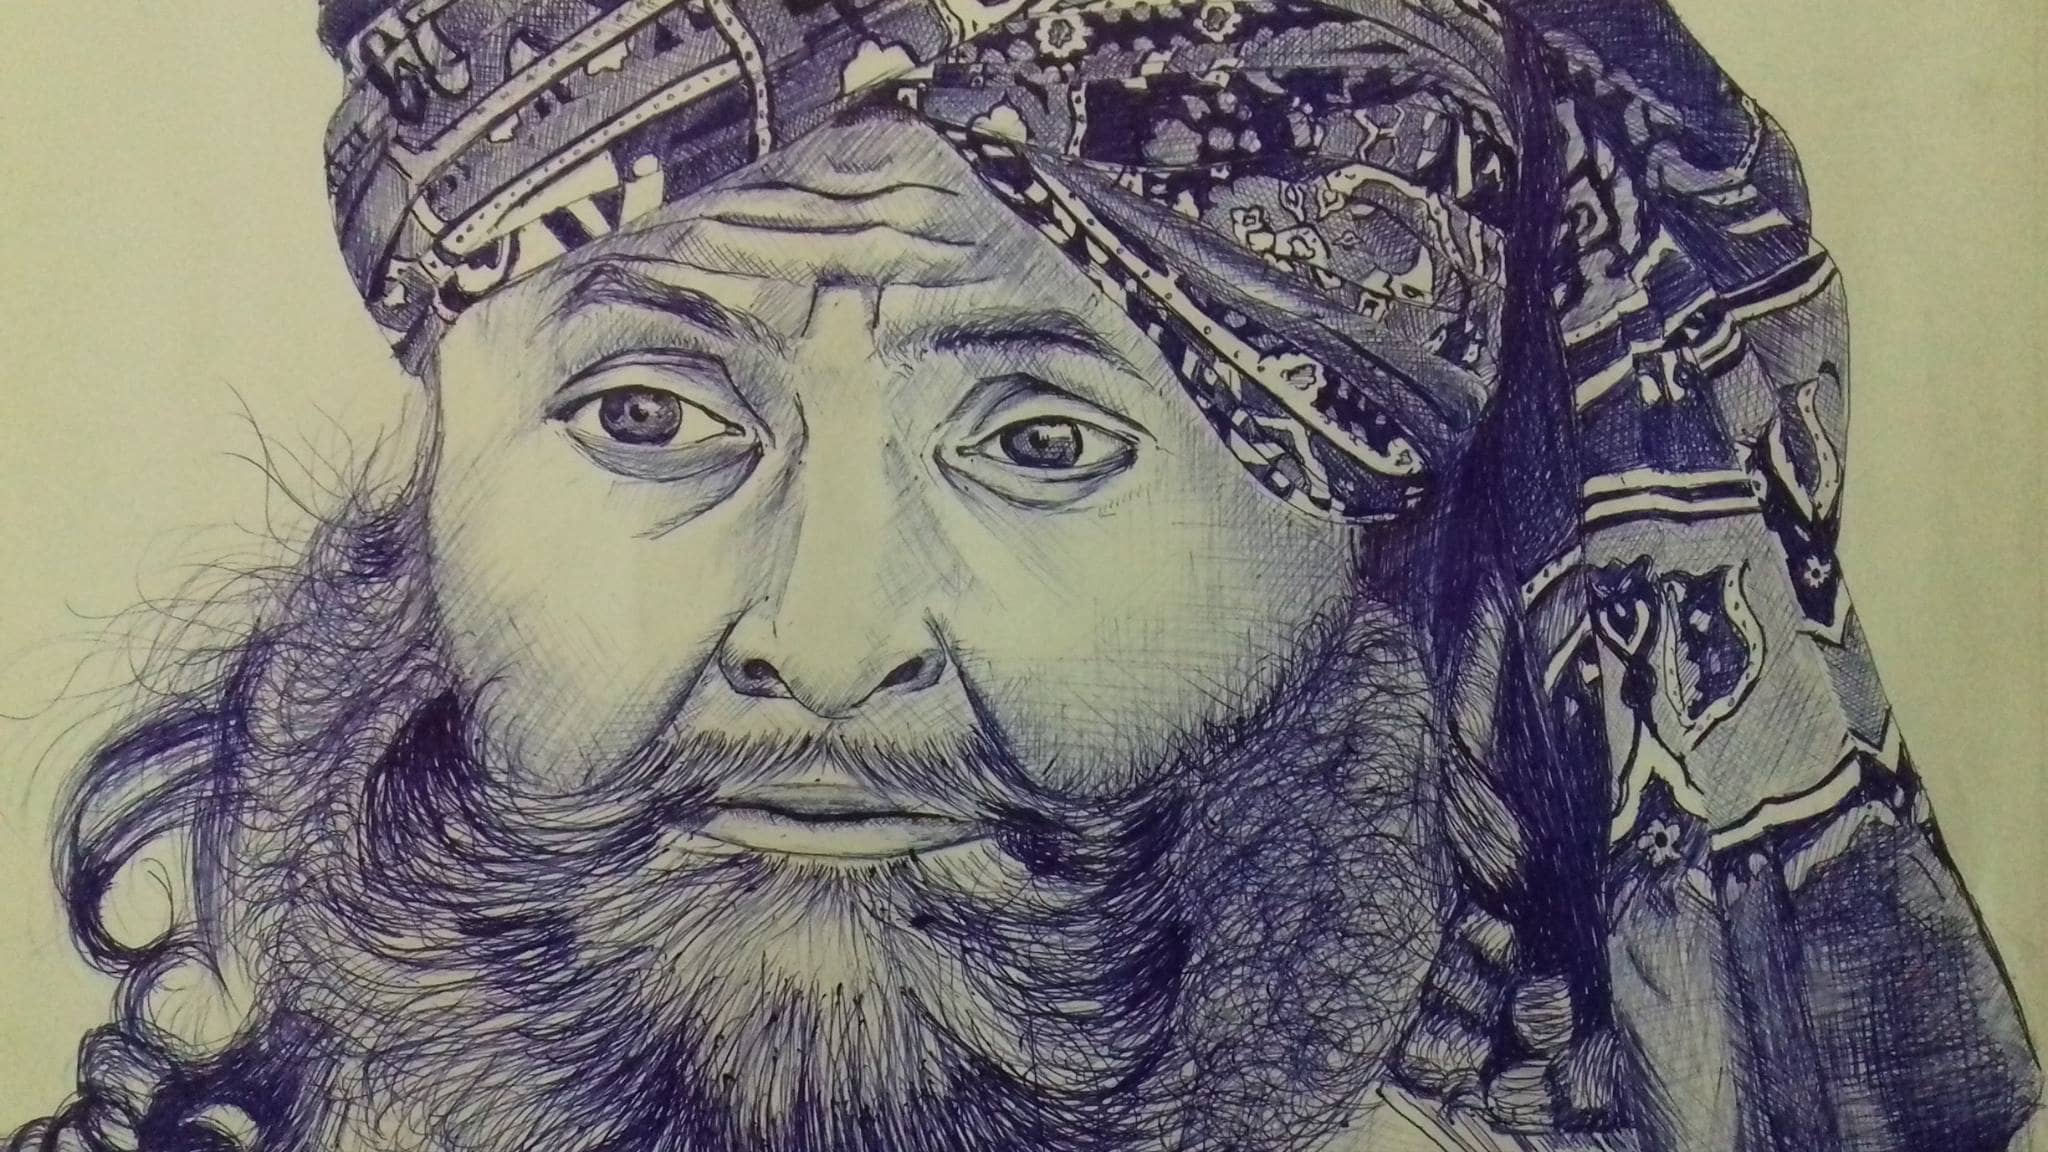 I will change your portrait into ballpoint pen or pencil sketch